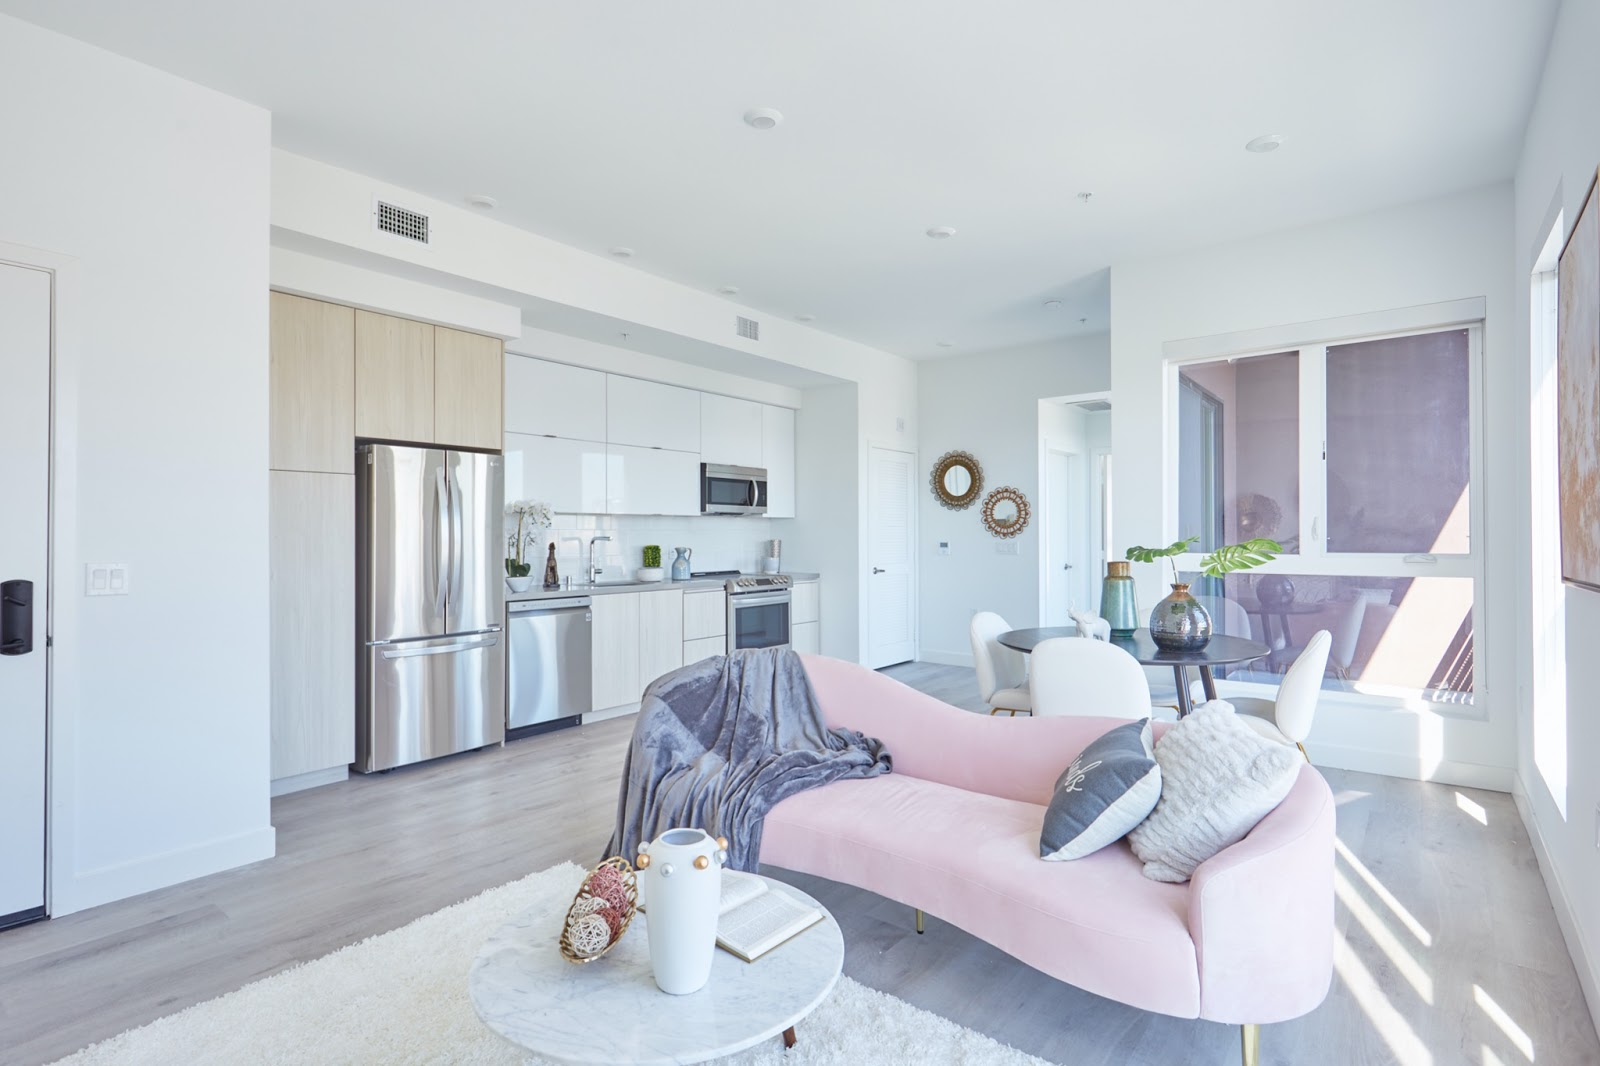 The Kenmore luxury apartment in los angeles